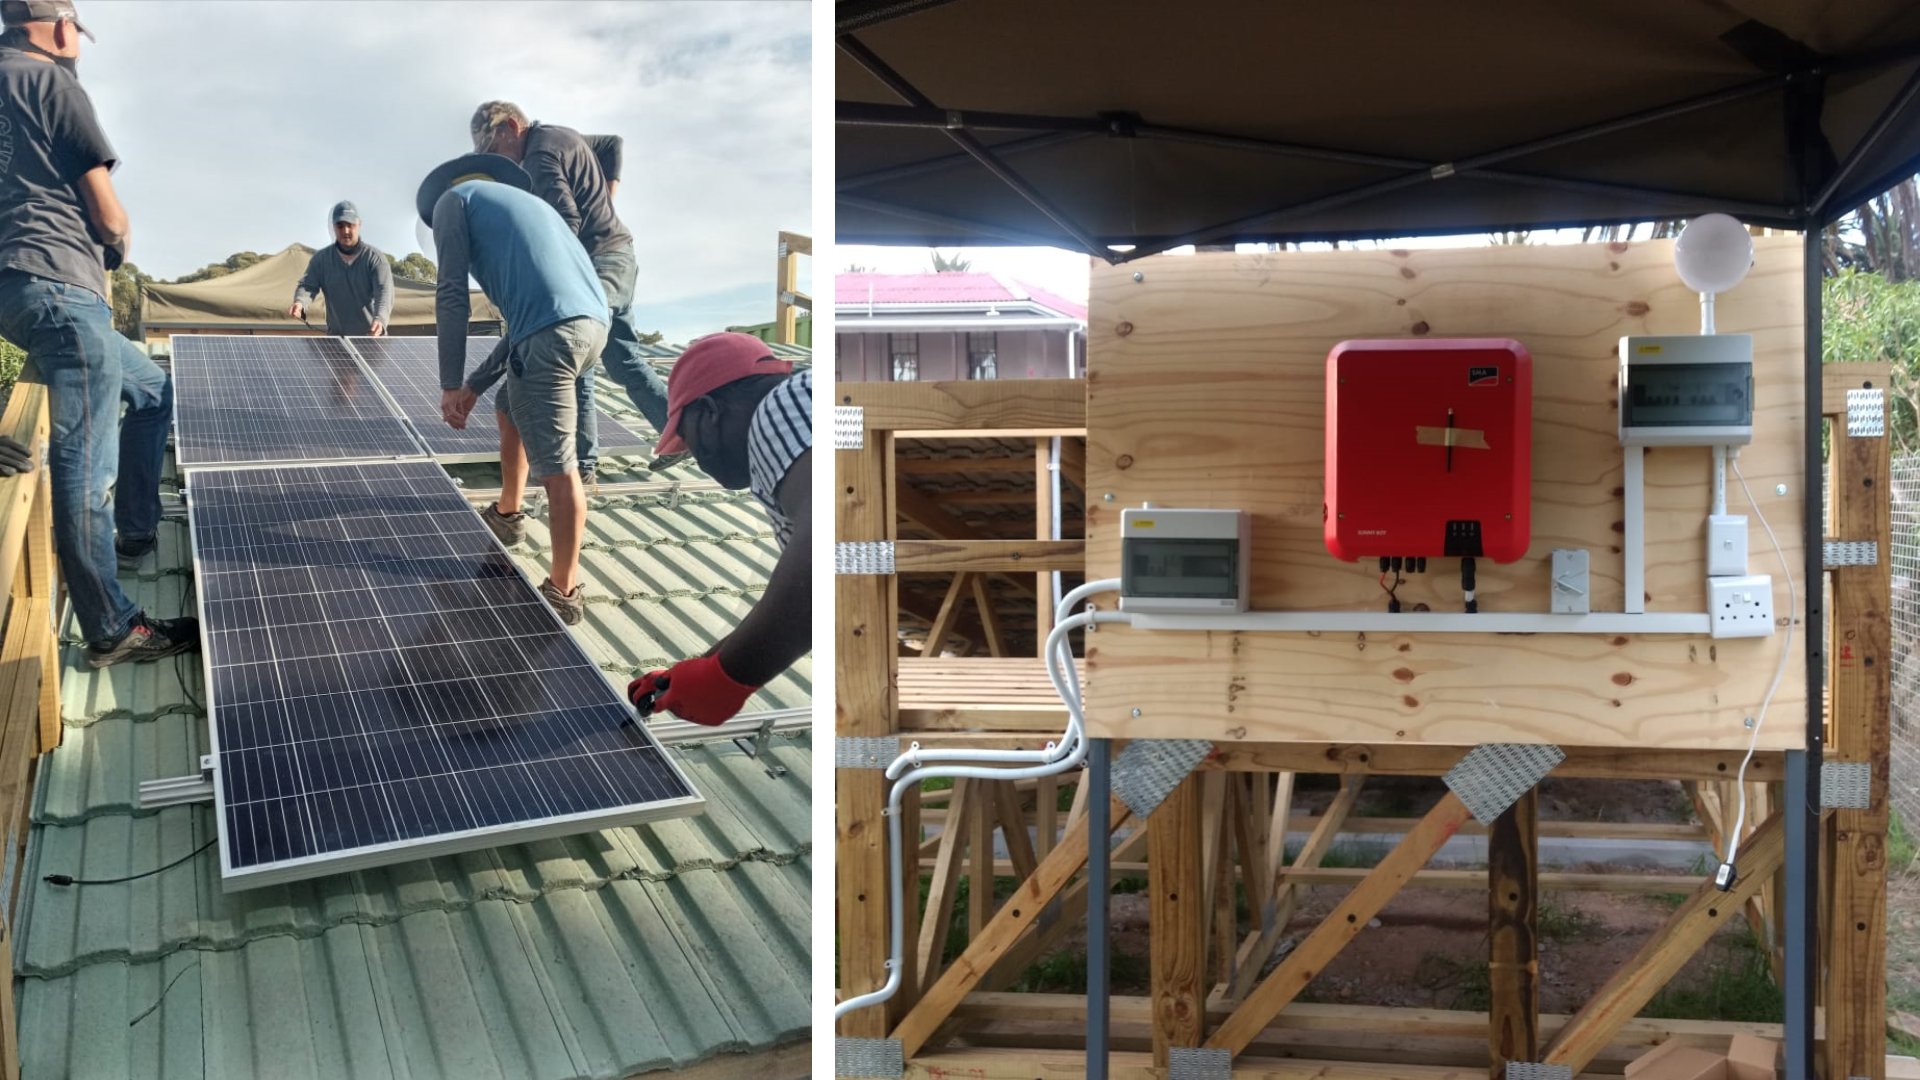 GREEN Solar Academy Cape Town going from strength to strength